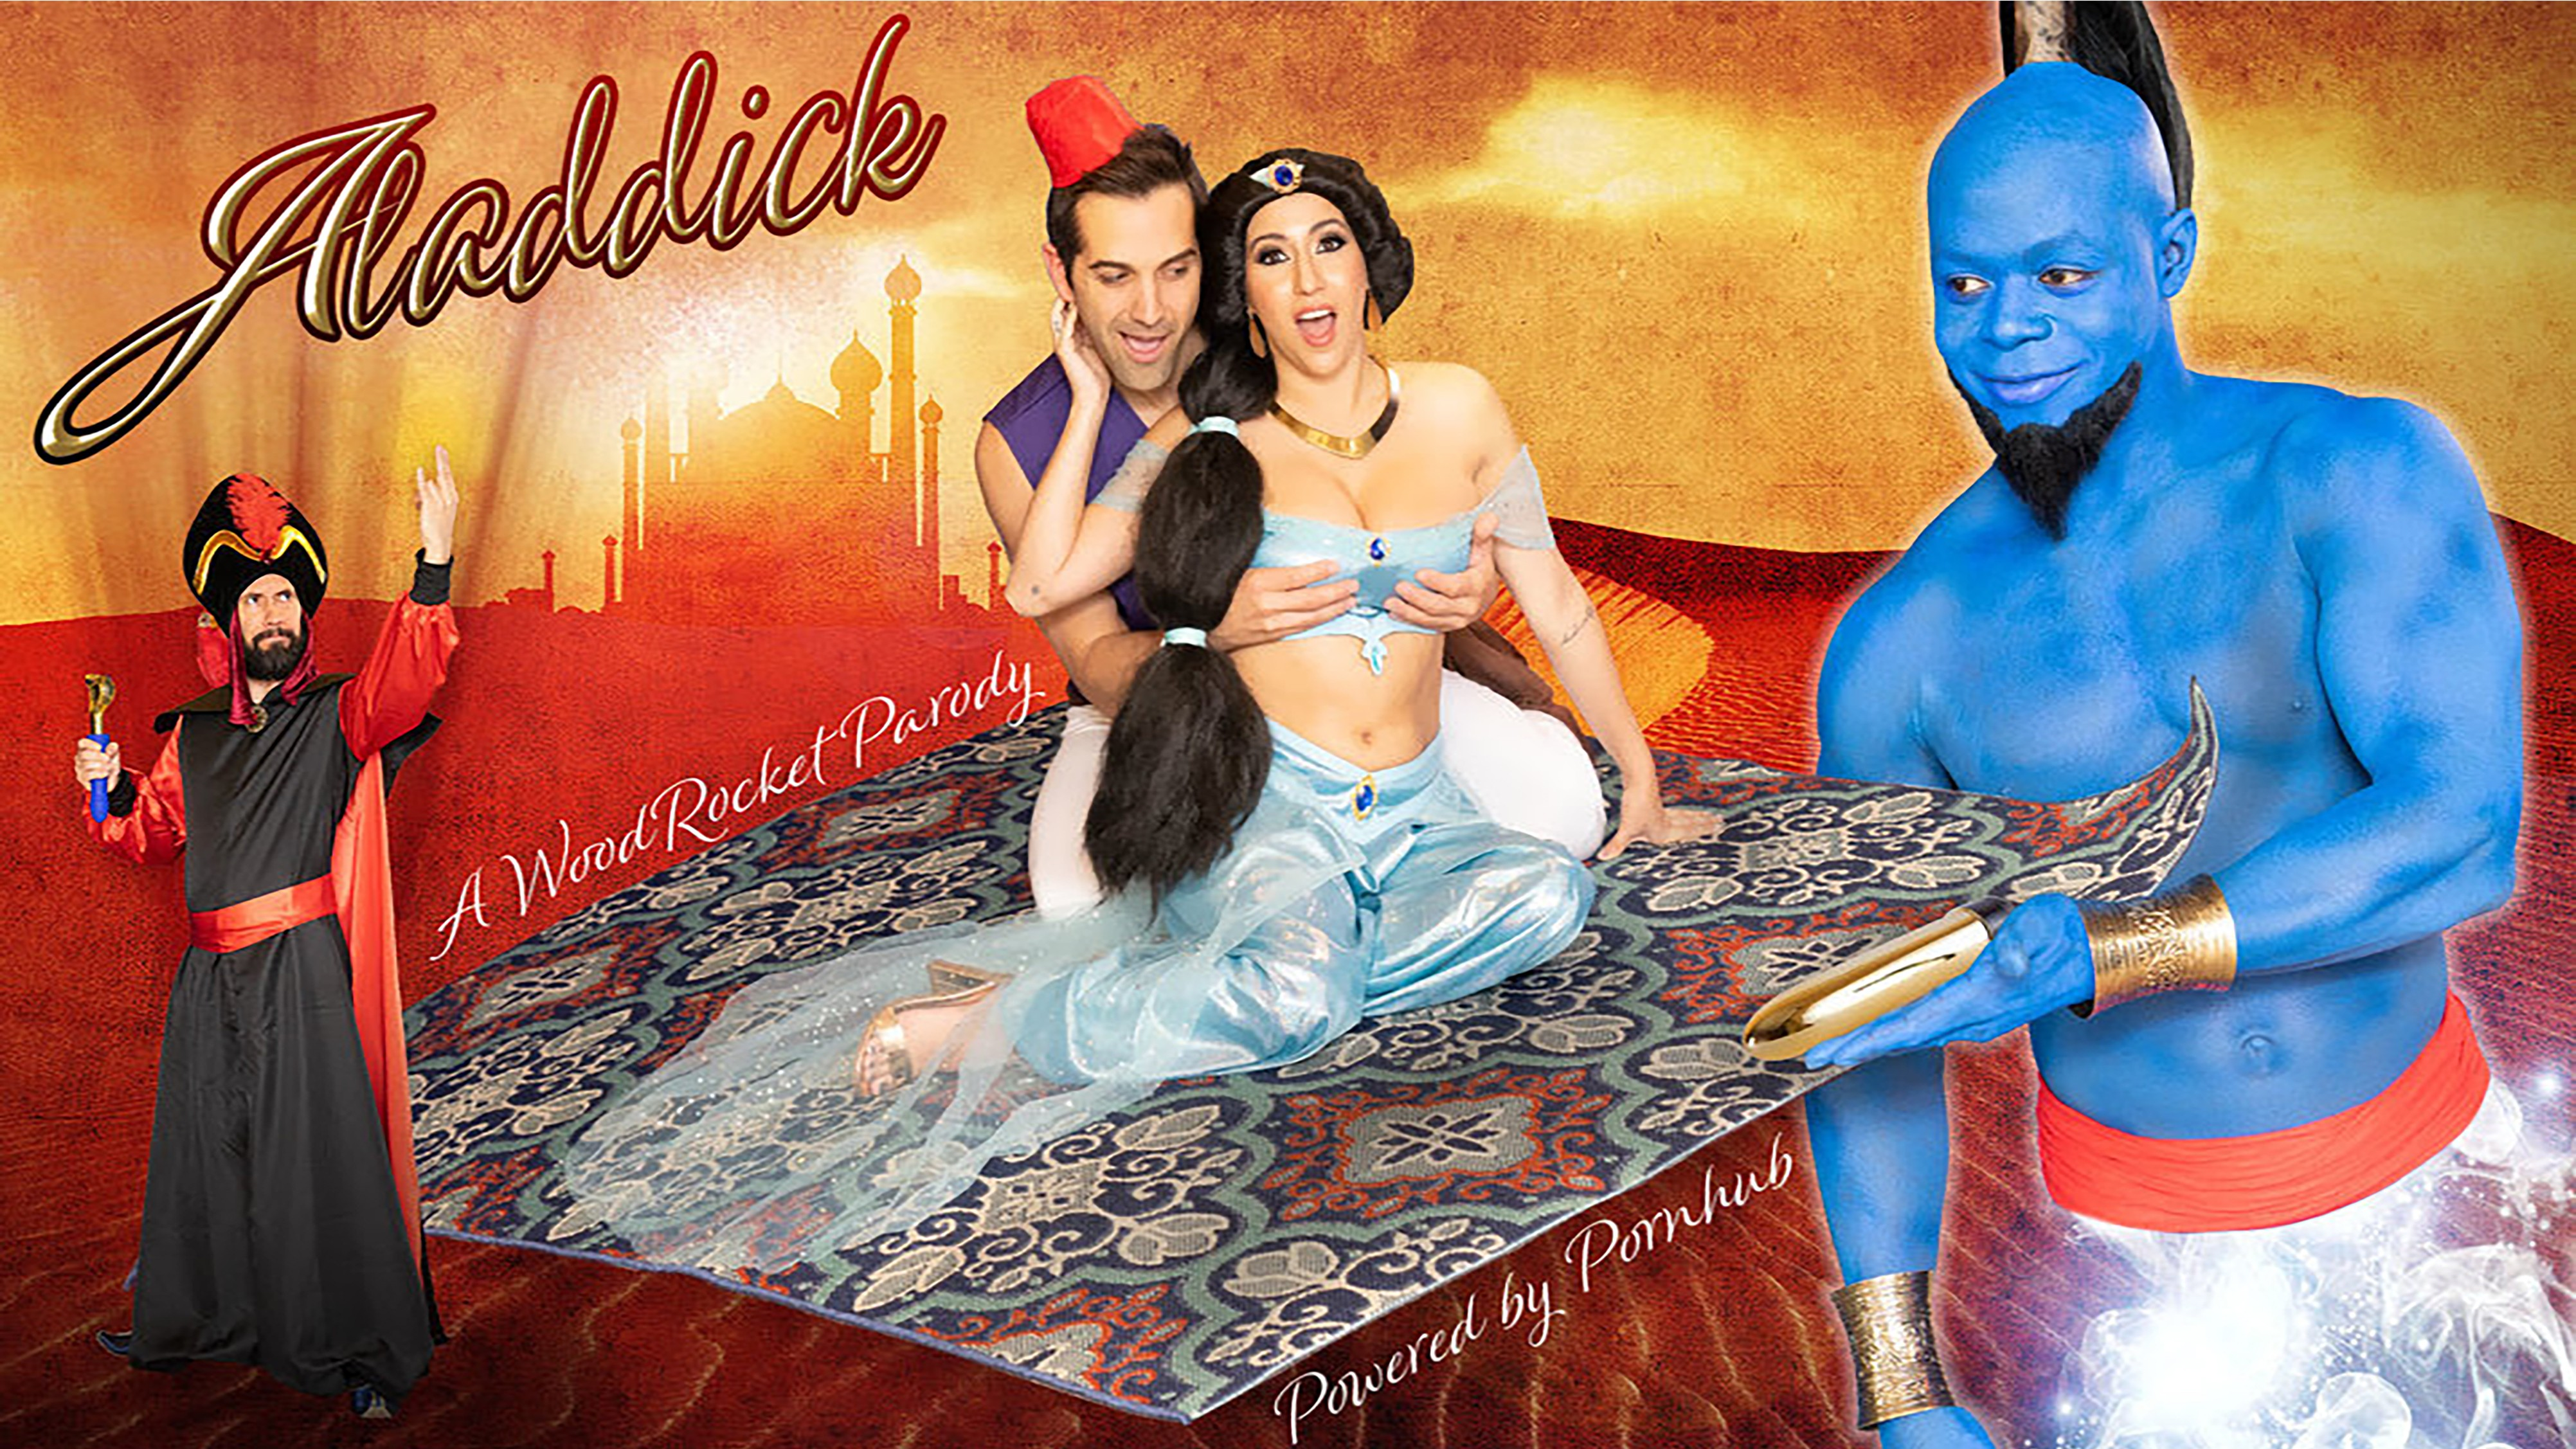 New Porn Parody vice - the 'aladdin' porn parody is here and we fixed its title